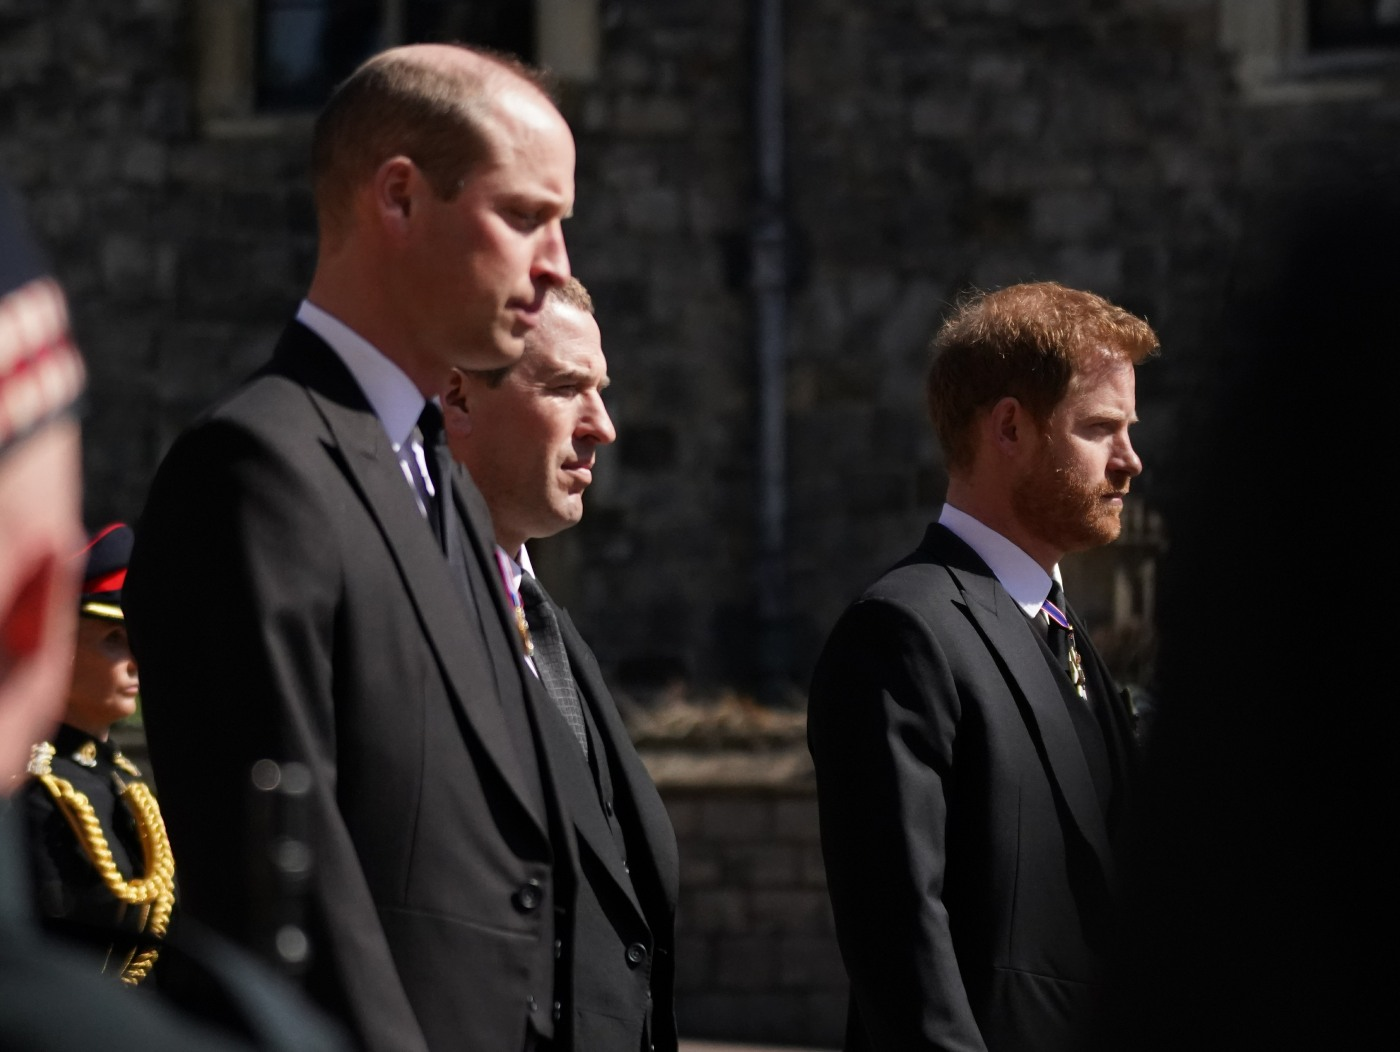 It sure doesn't sound like Prince William & Harry's reunion went very well